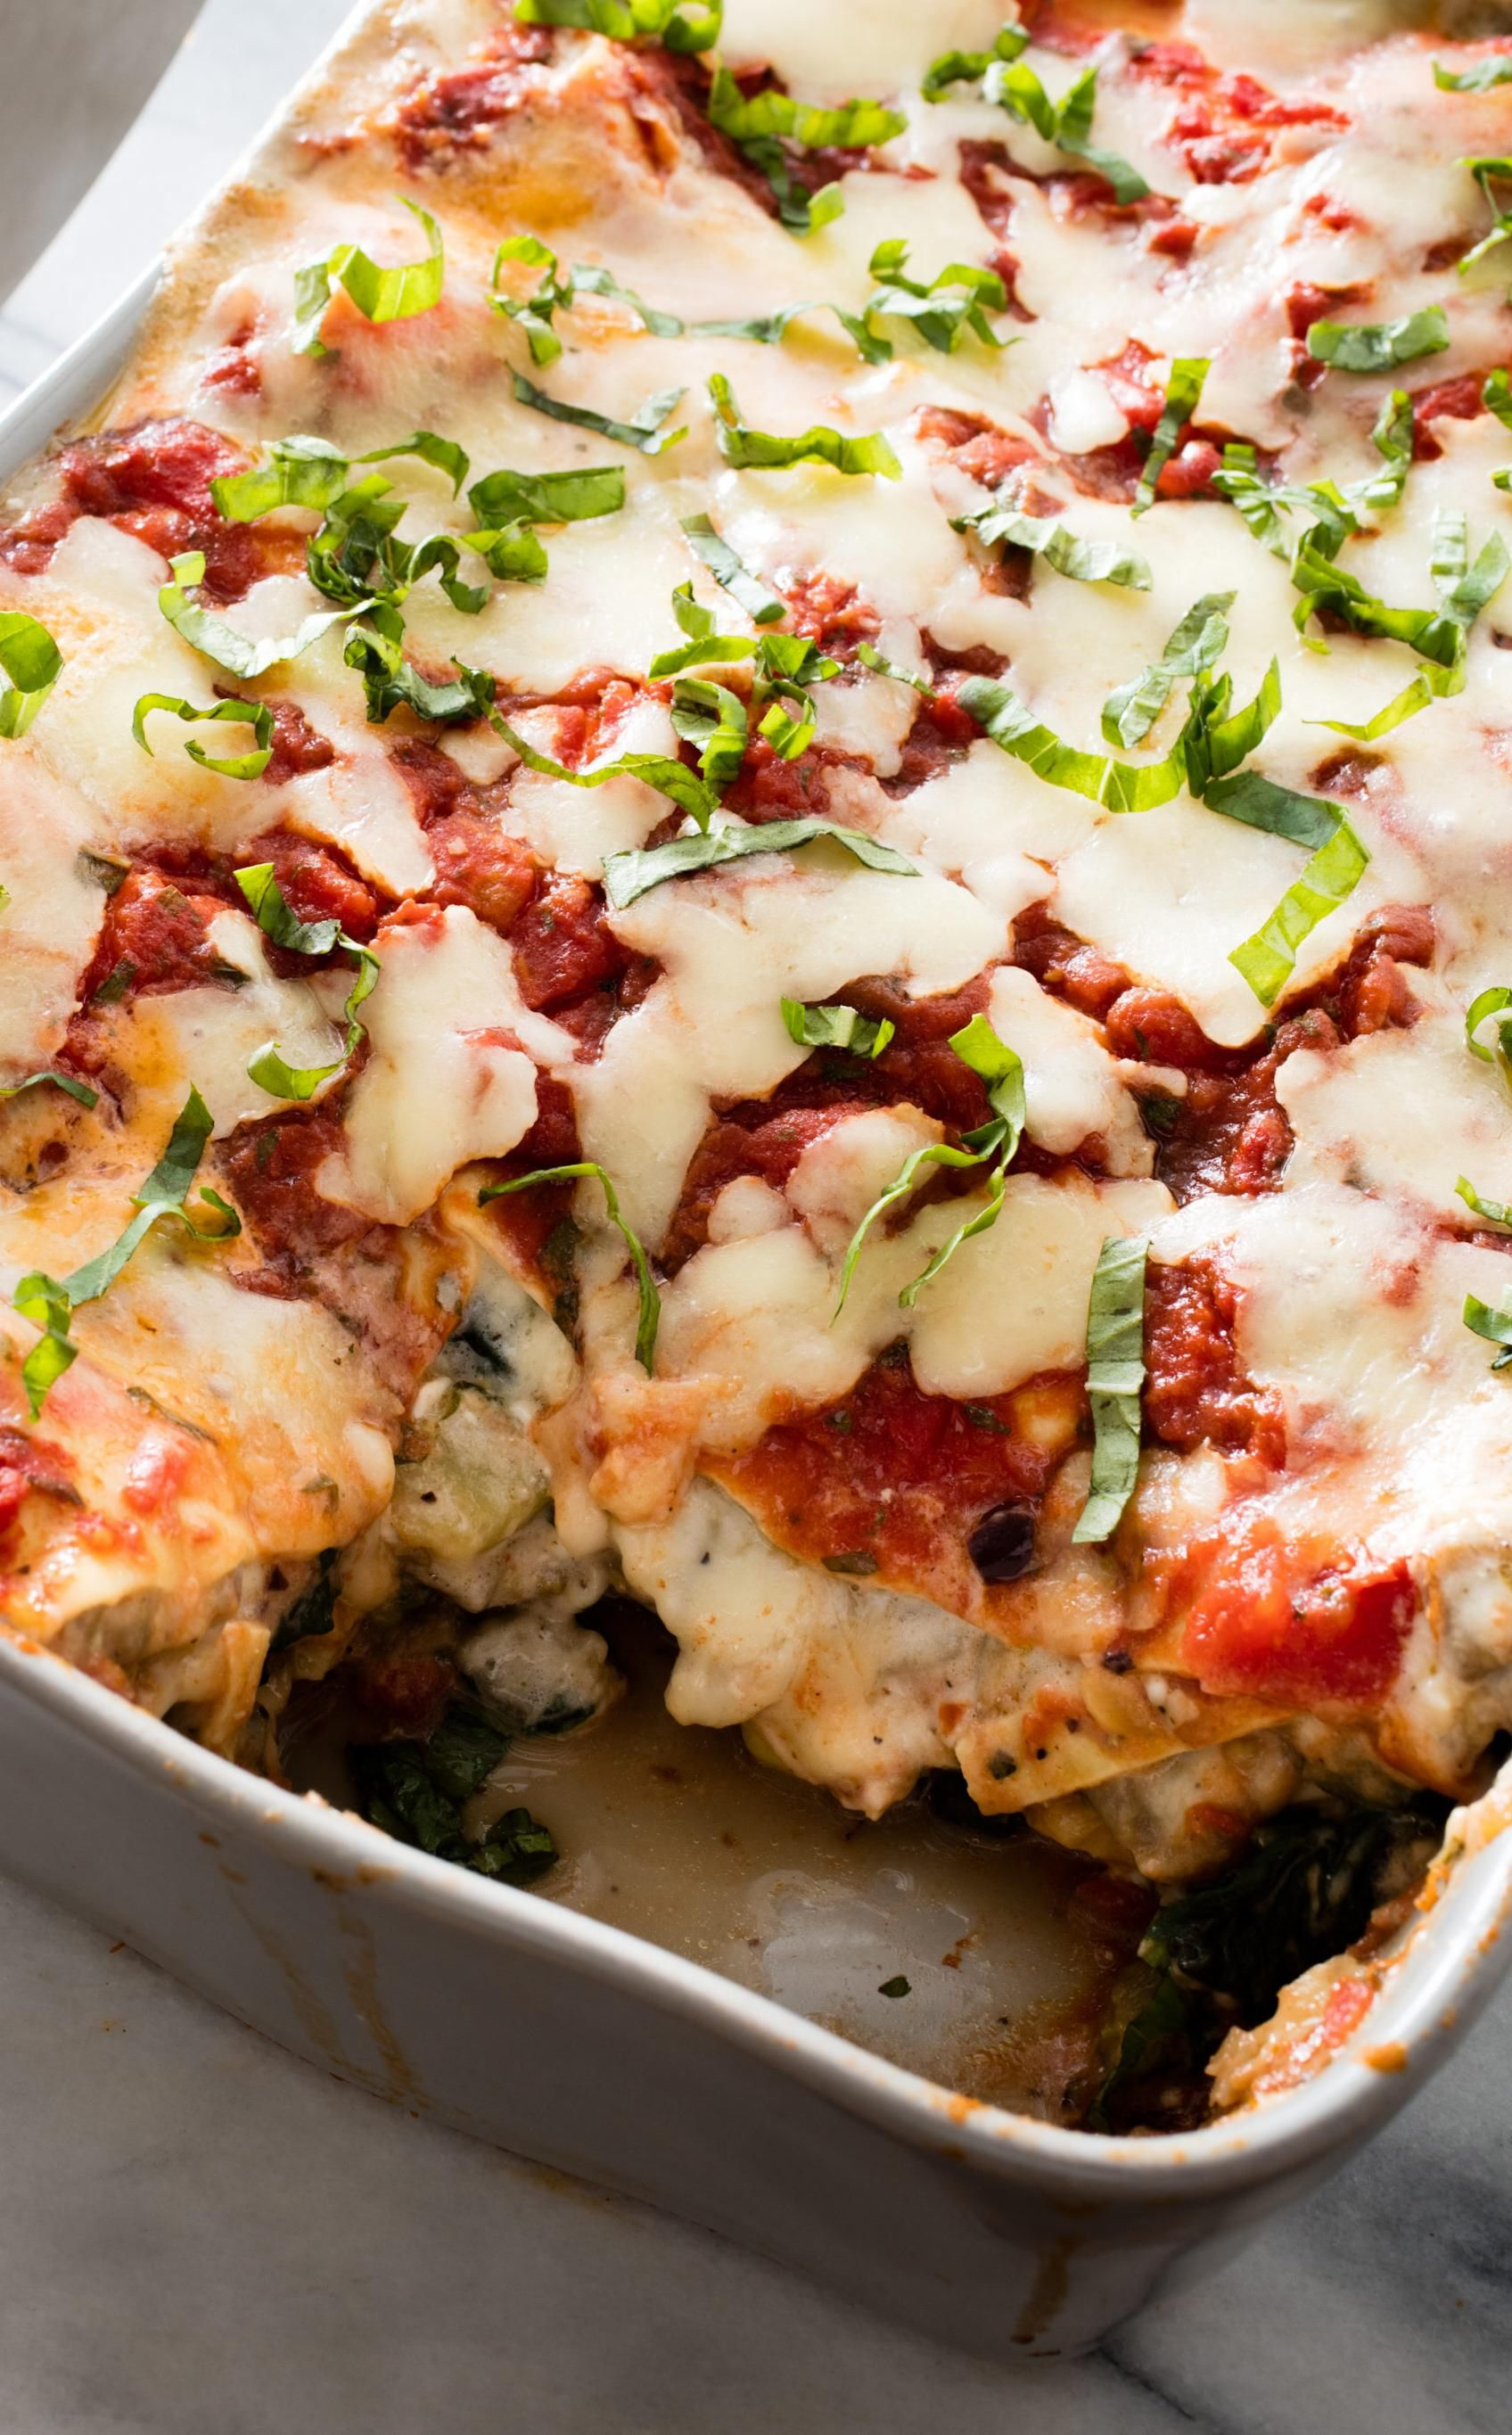 Vegetable Lasagna Using Cottage Cheese Instead Of Ricotta May Be Controversial But It Adds Undeniable Extra Crea Vegetable Lasagna Lasagna Vegetarian Dinners